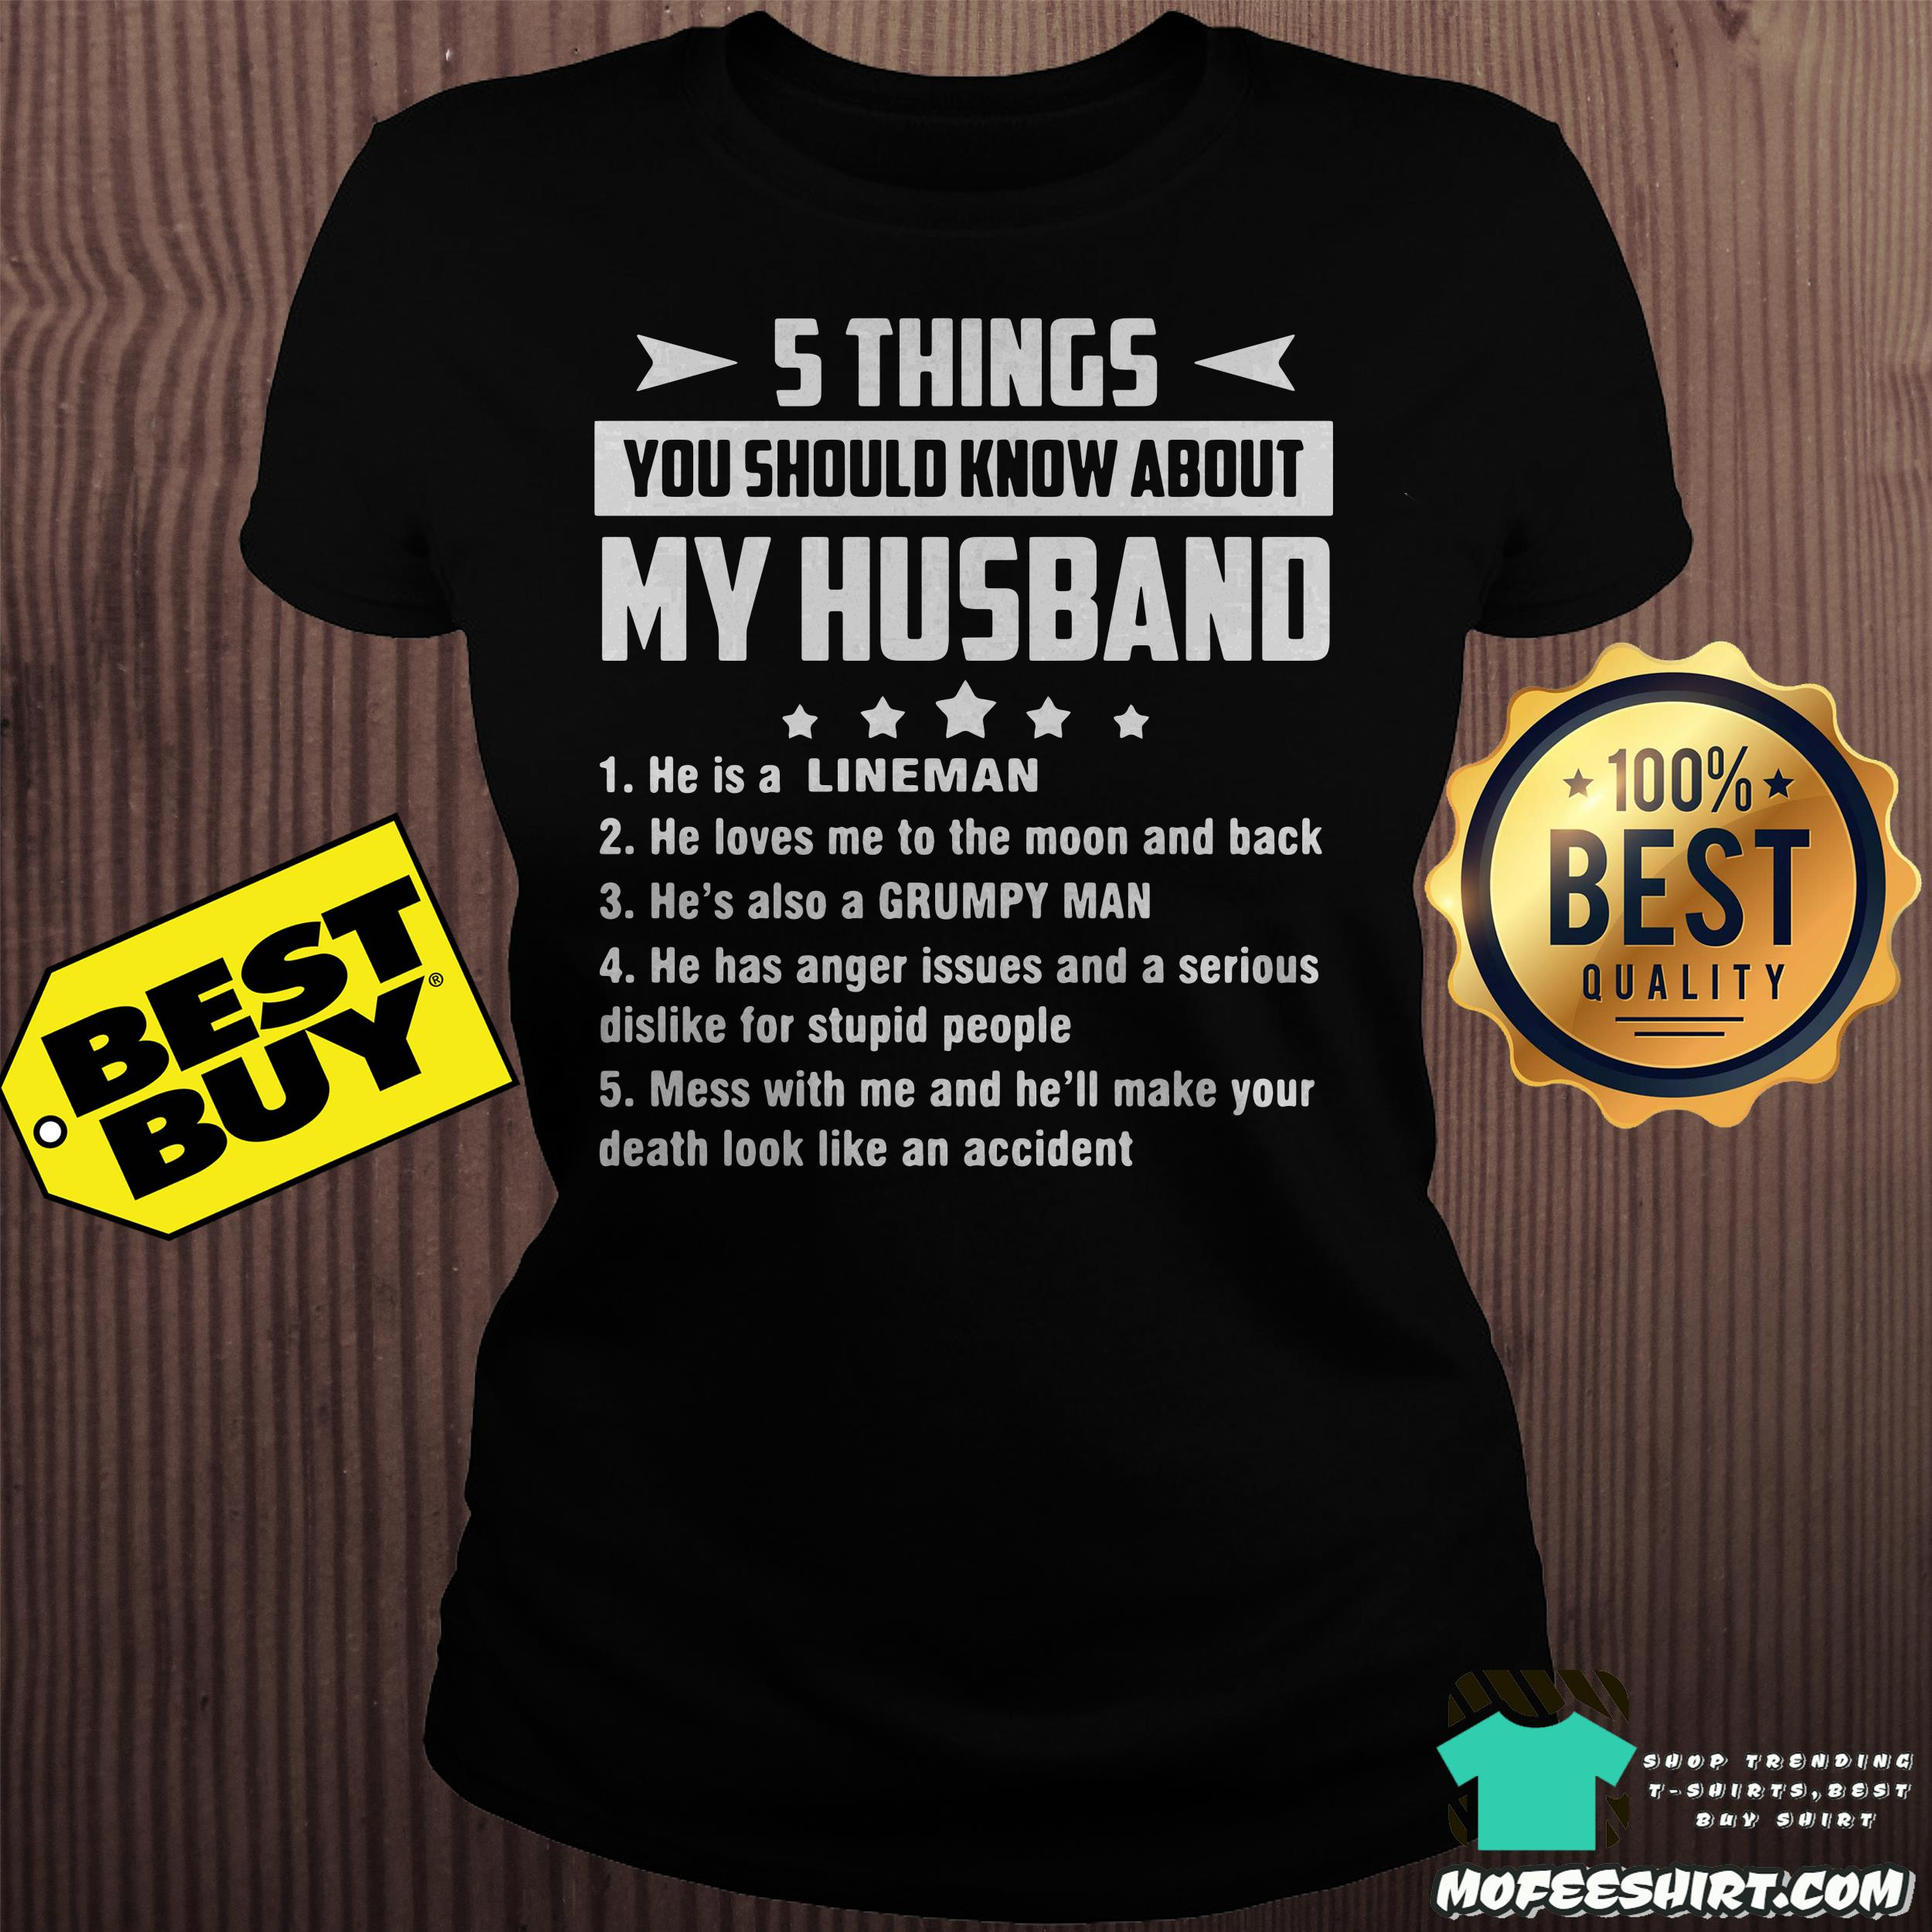 5 things you should know about my husband he is a lineman ladies tee - 5 things you should know about my husband he is a lineman shirt